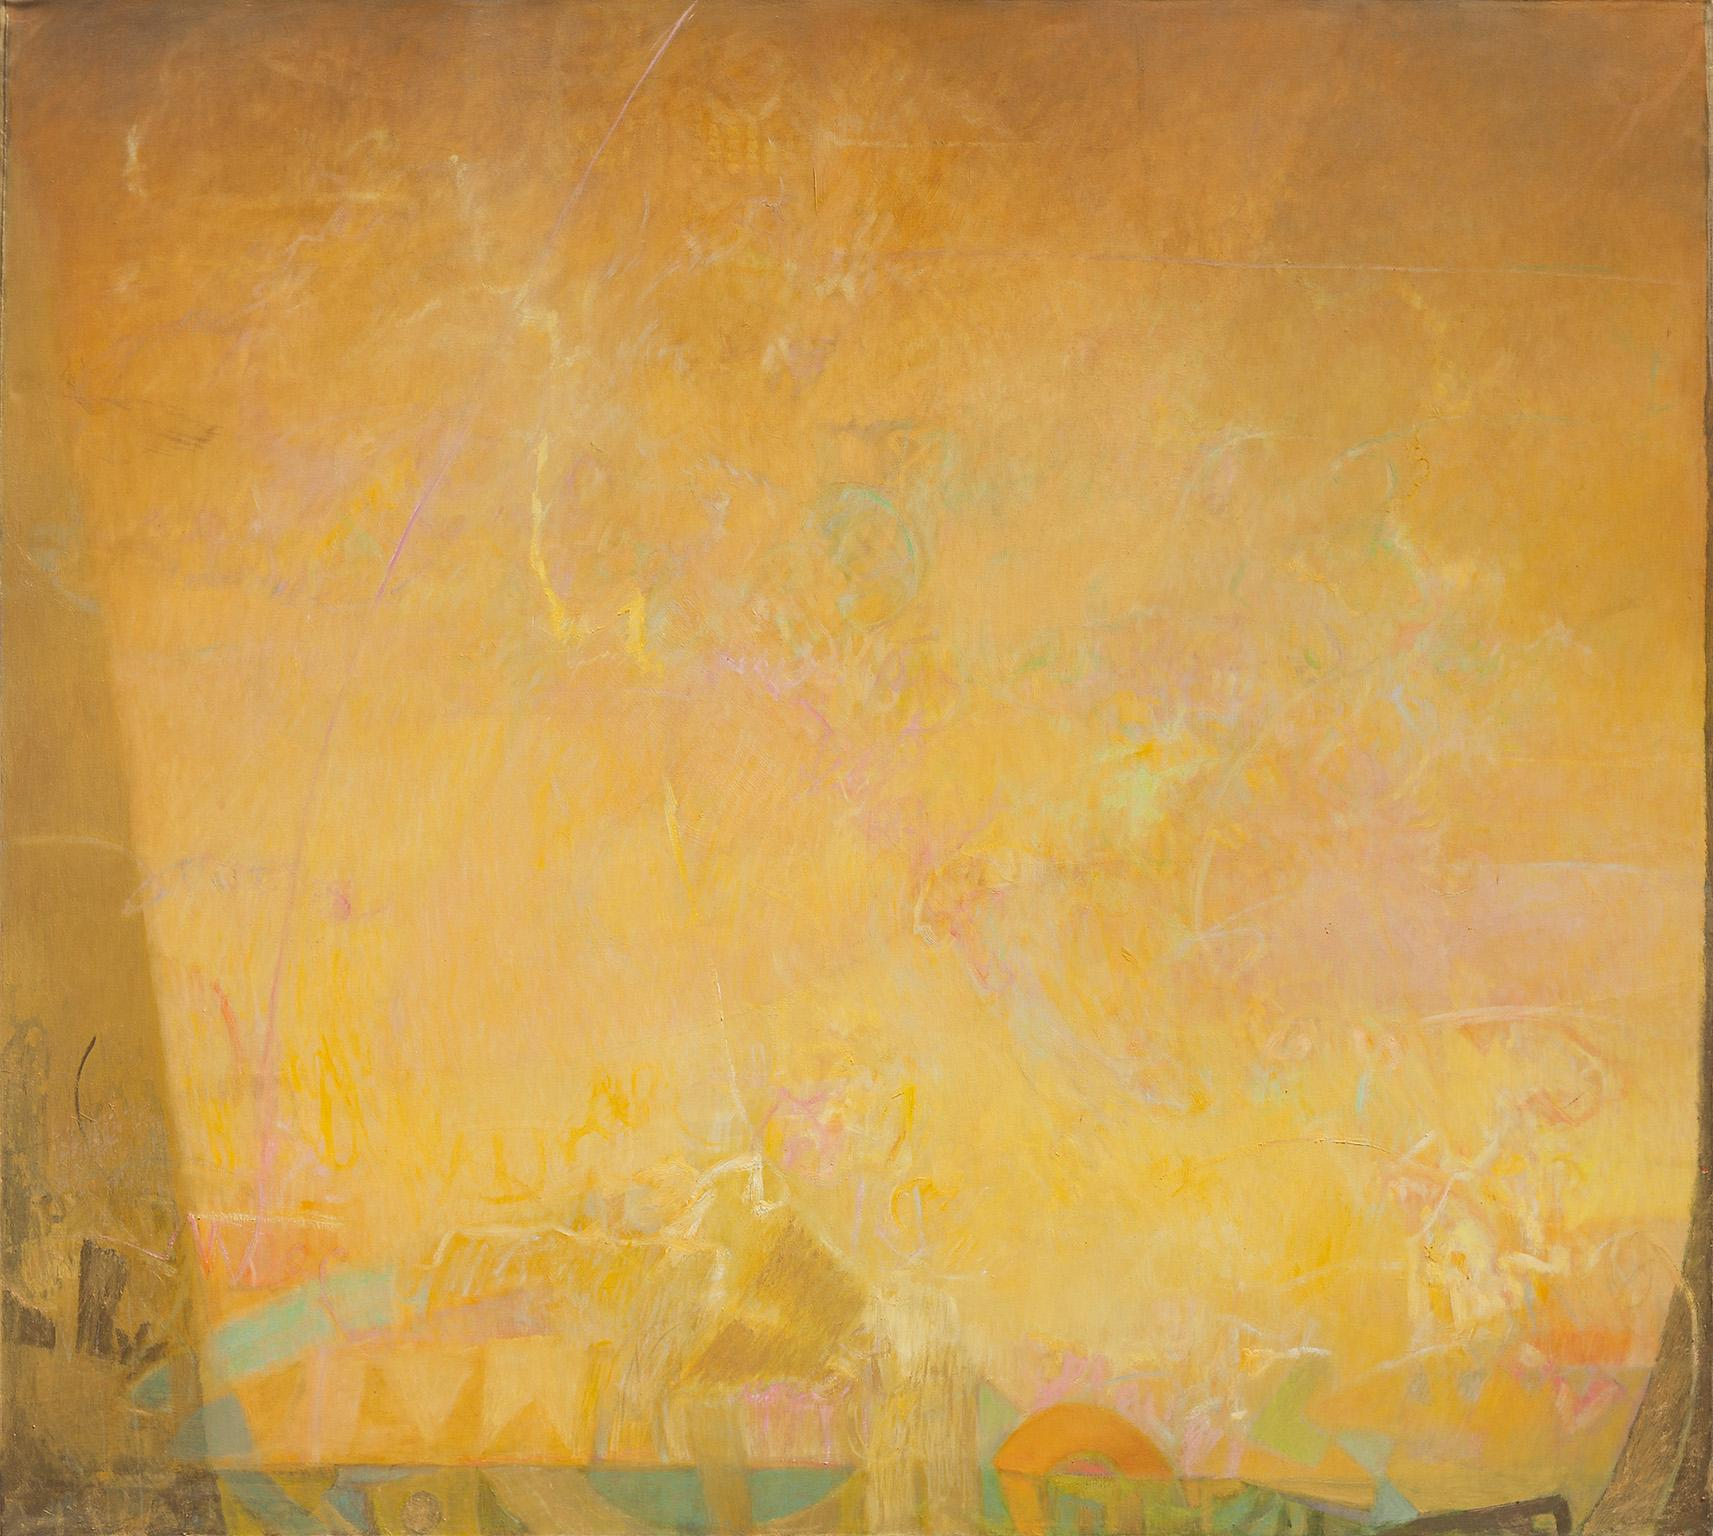 The Hours: Sunrise, When Everything Is Possible - Large Abstract Yellow Painting